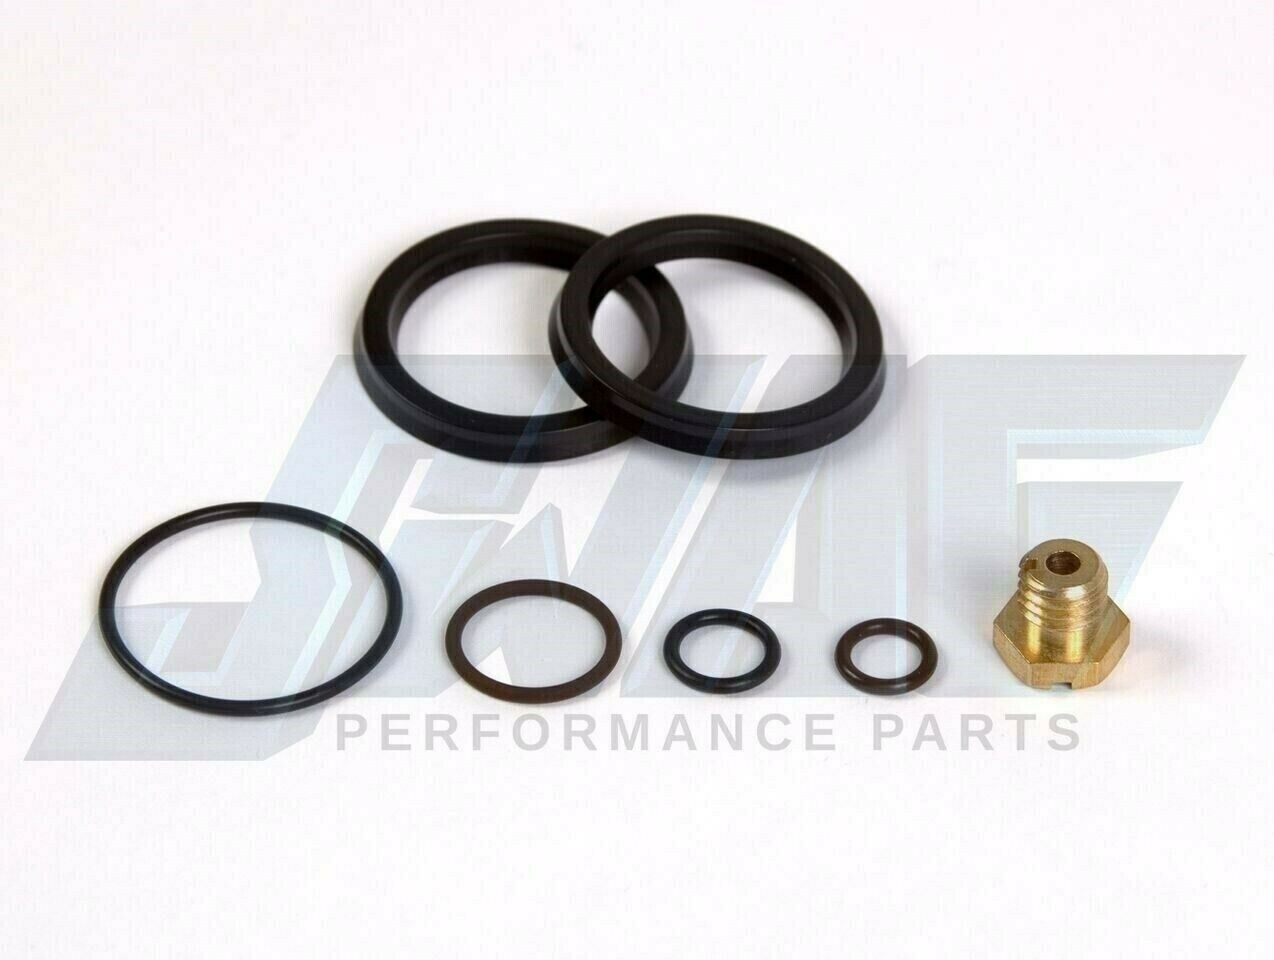 01-10 GM Duramax Diesel 6.6 6.6L Fuel Filter Housing Seal Kit & Bleeder 1  of 1FREE Shipping See More